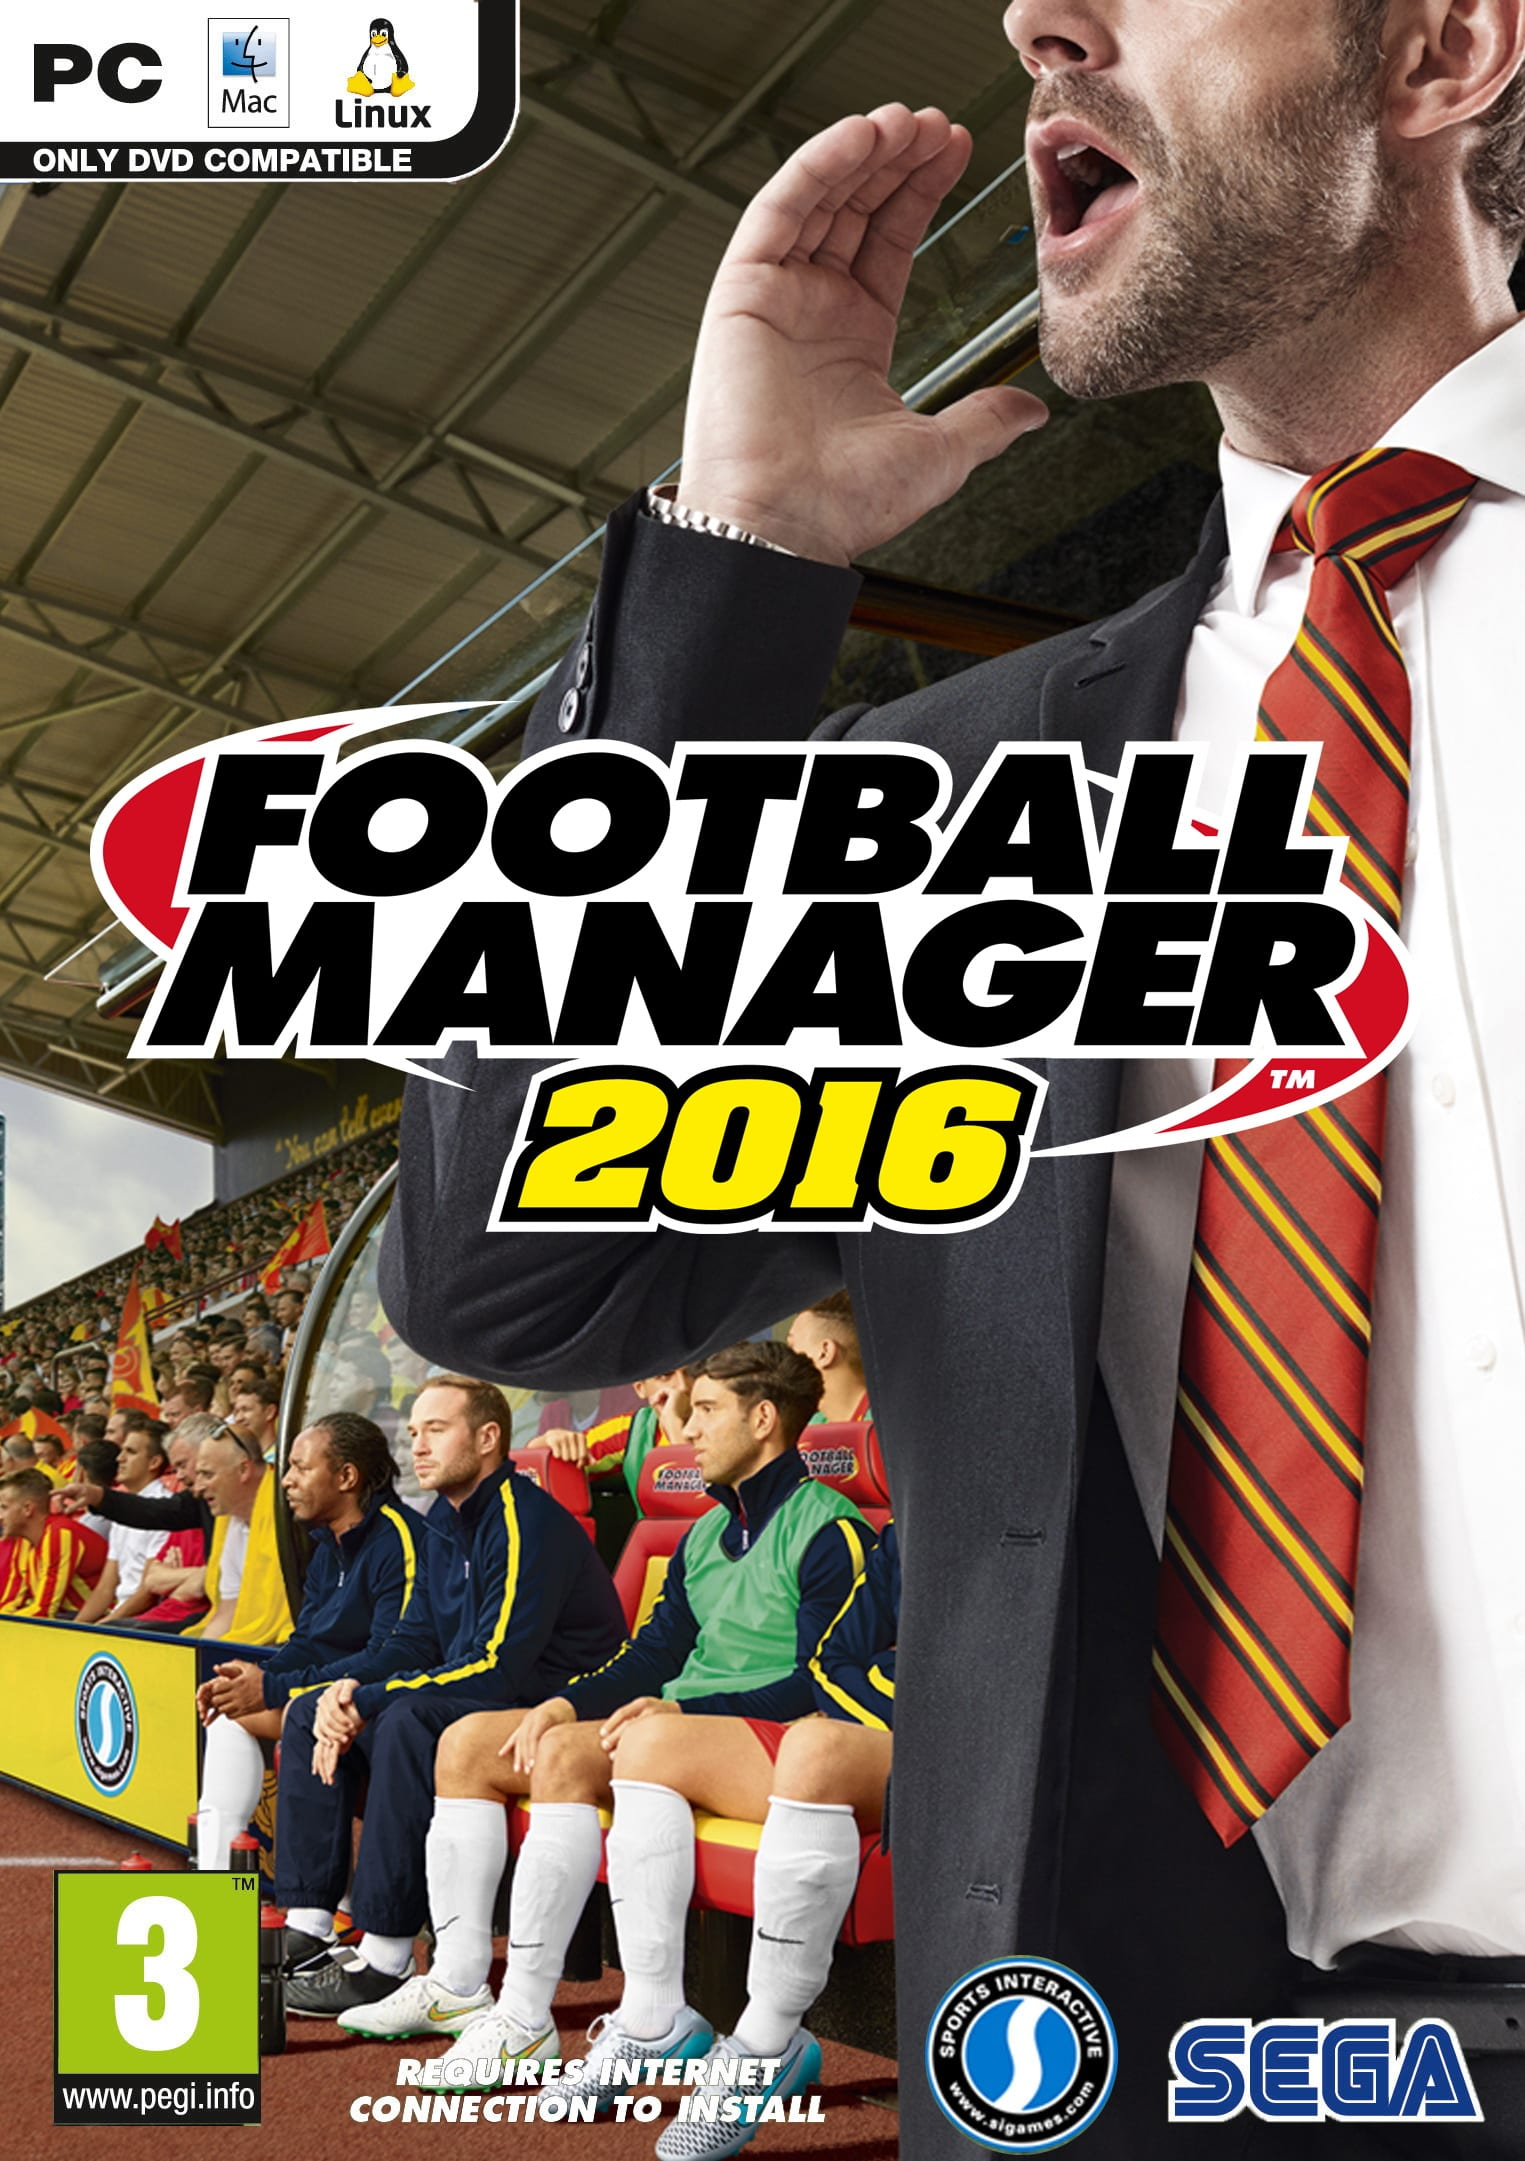 Football Manager 2016 Free Download, Football Manager 2016 Free Download